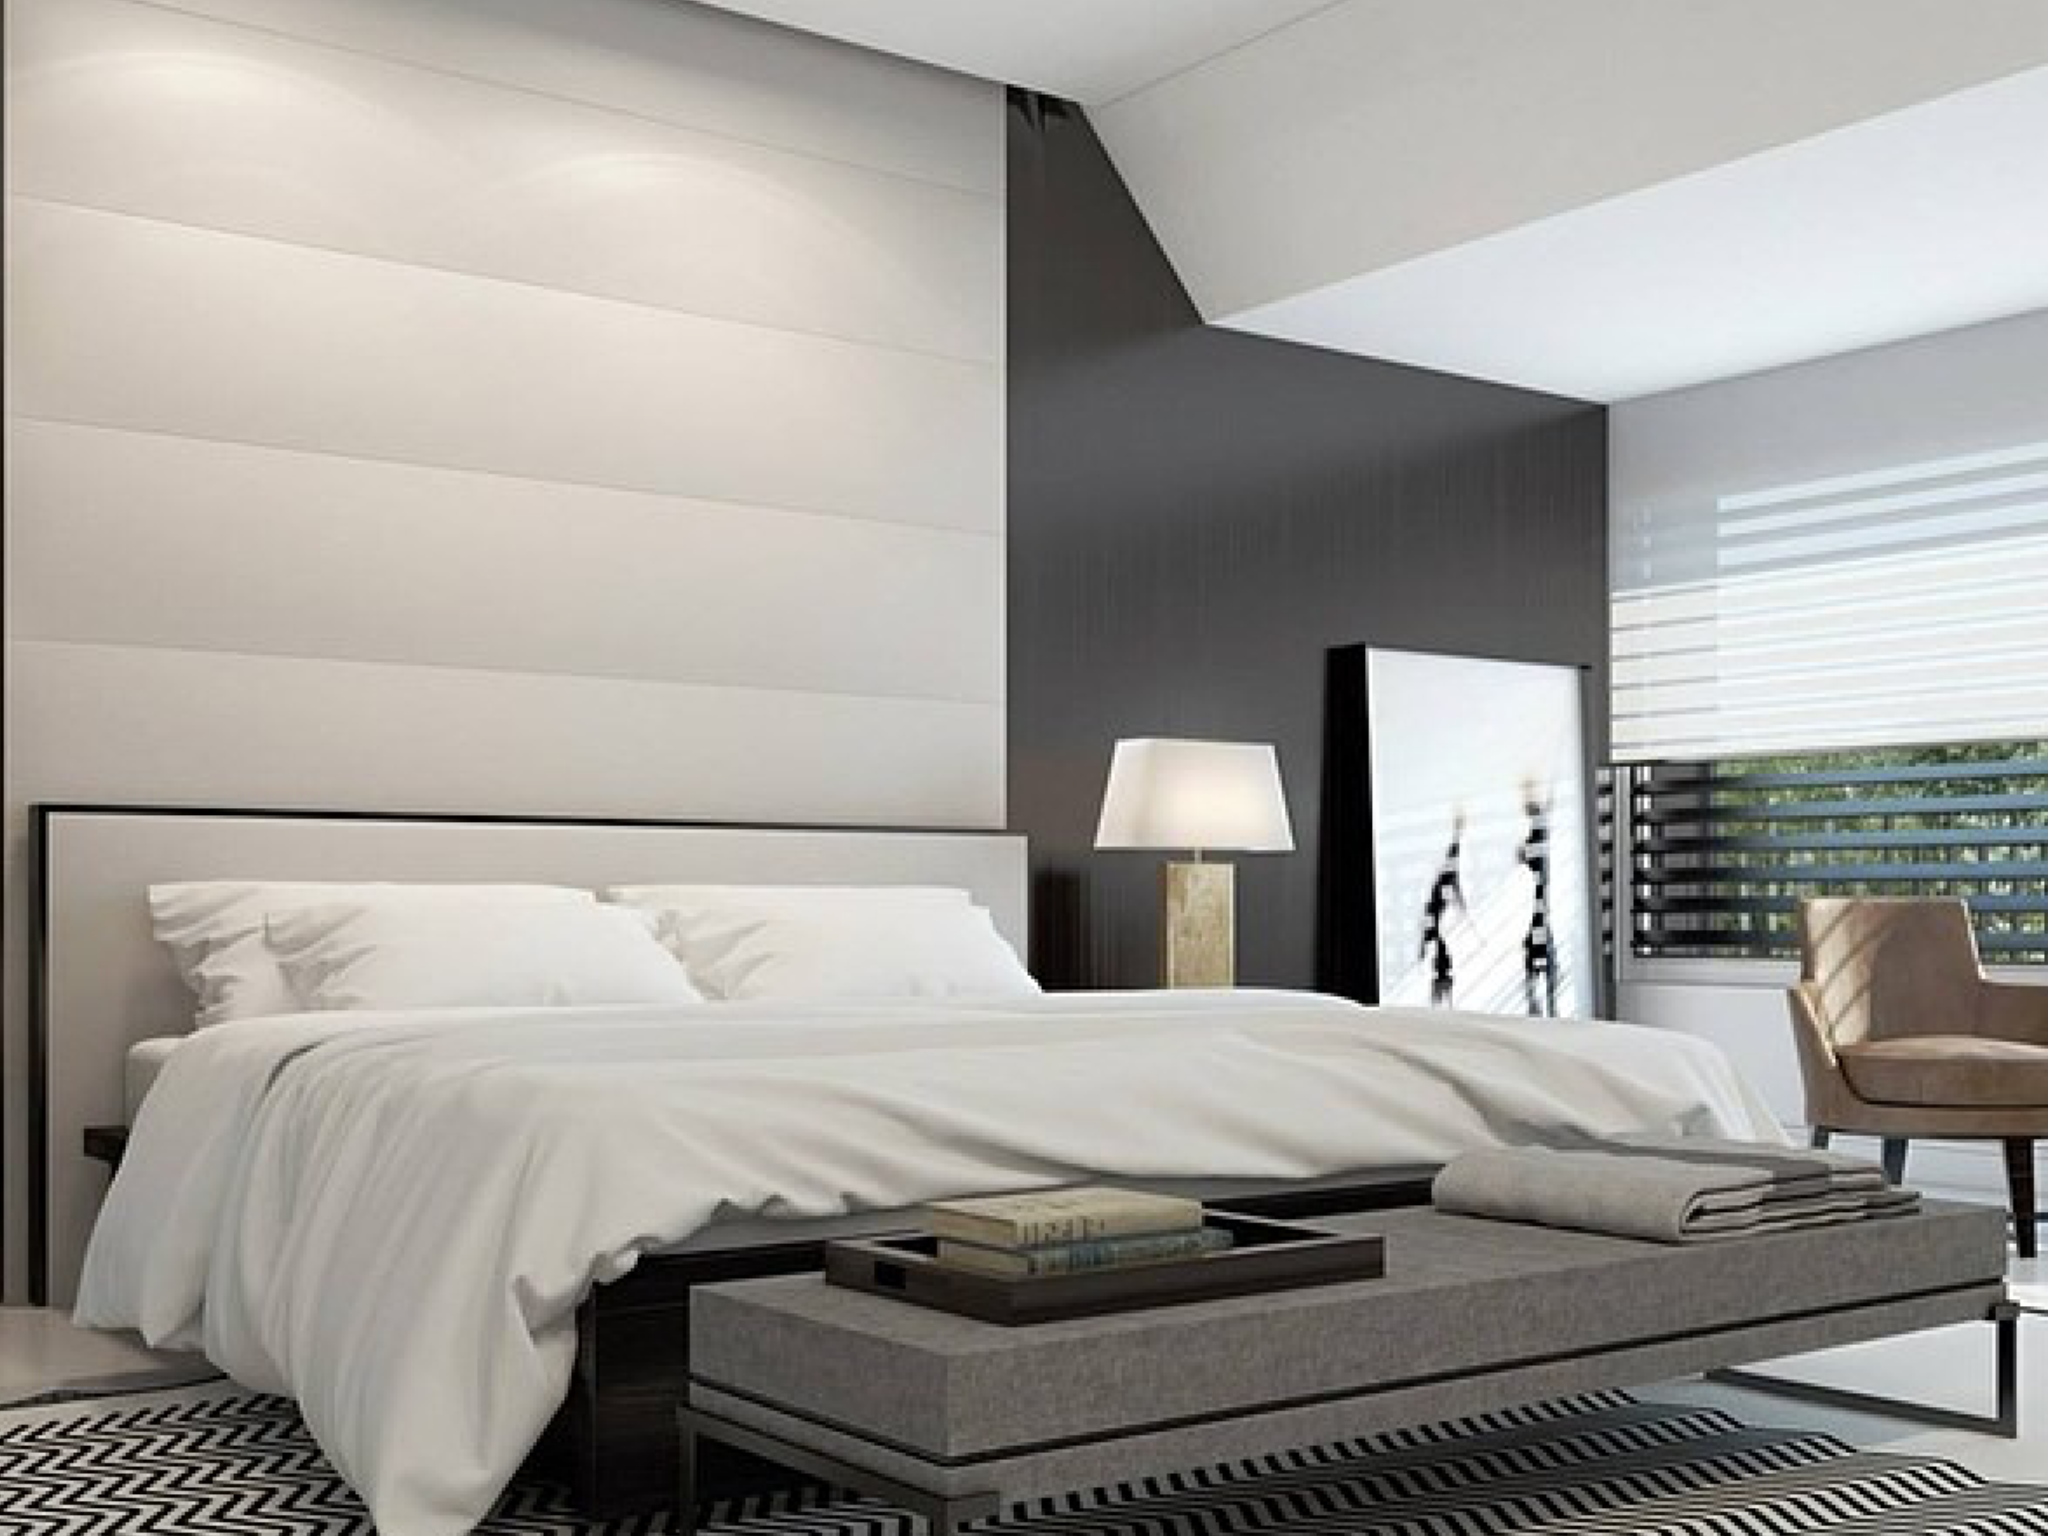 Designing Your Own Bedroom Pinjose Aguilar On Cuarto  Pinterest